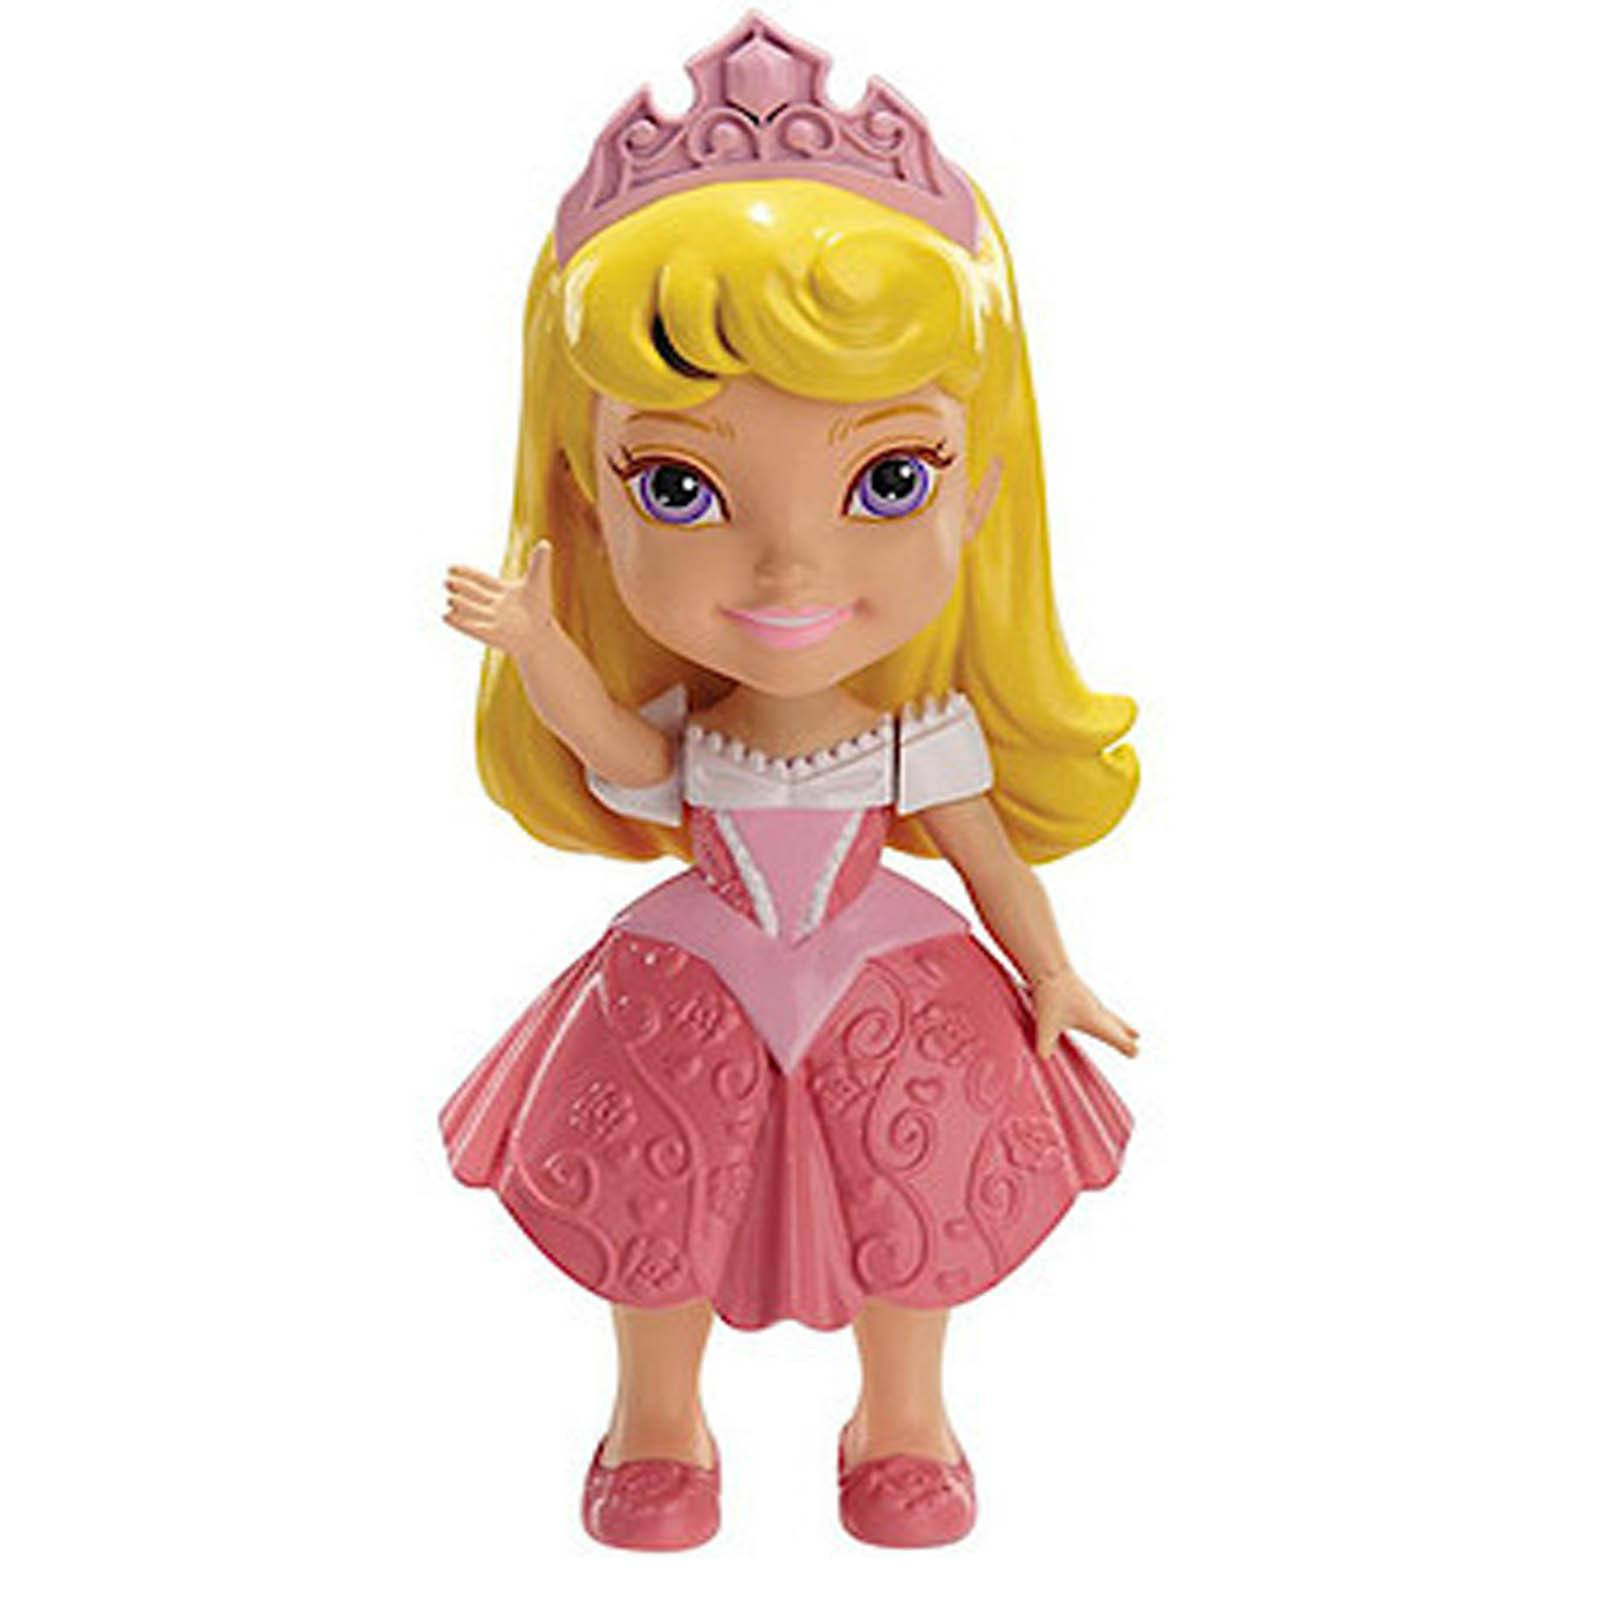 My First Disney Princess 3 inch Mini Toddler Doll - Aurora Sparkle Collection